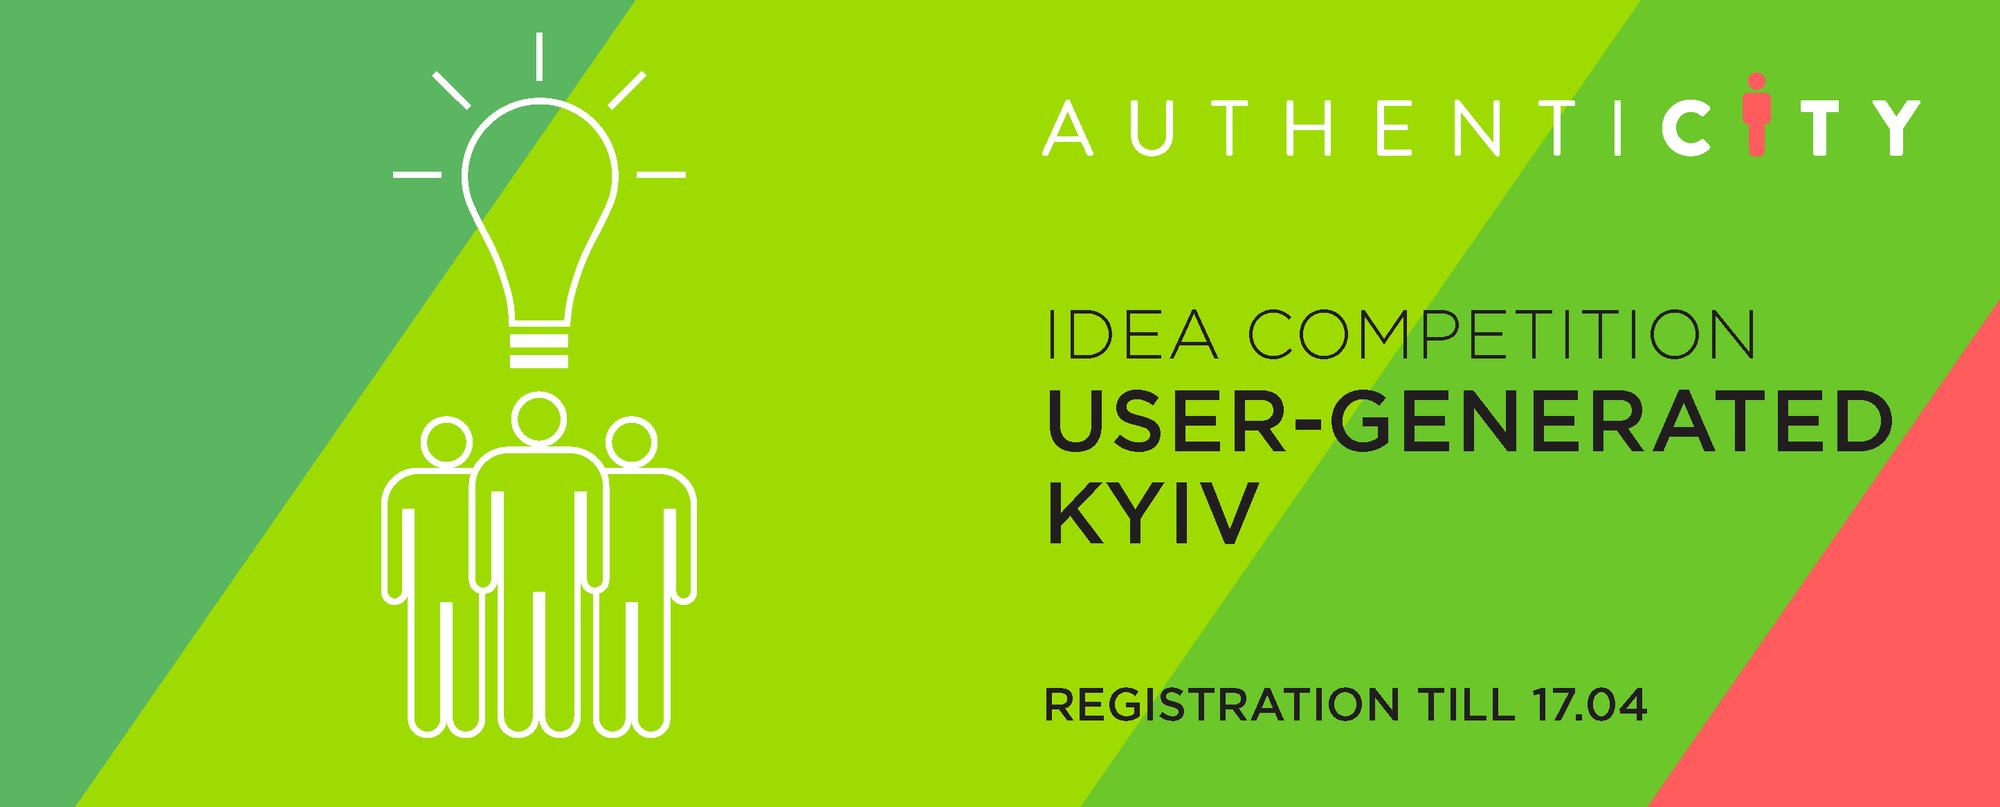 User-Generated Kyiv Ideas Competition